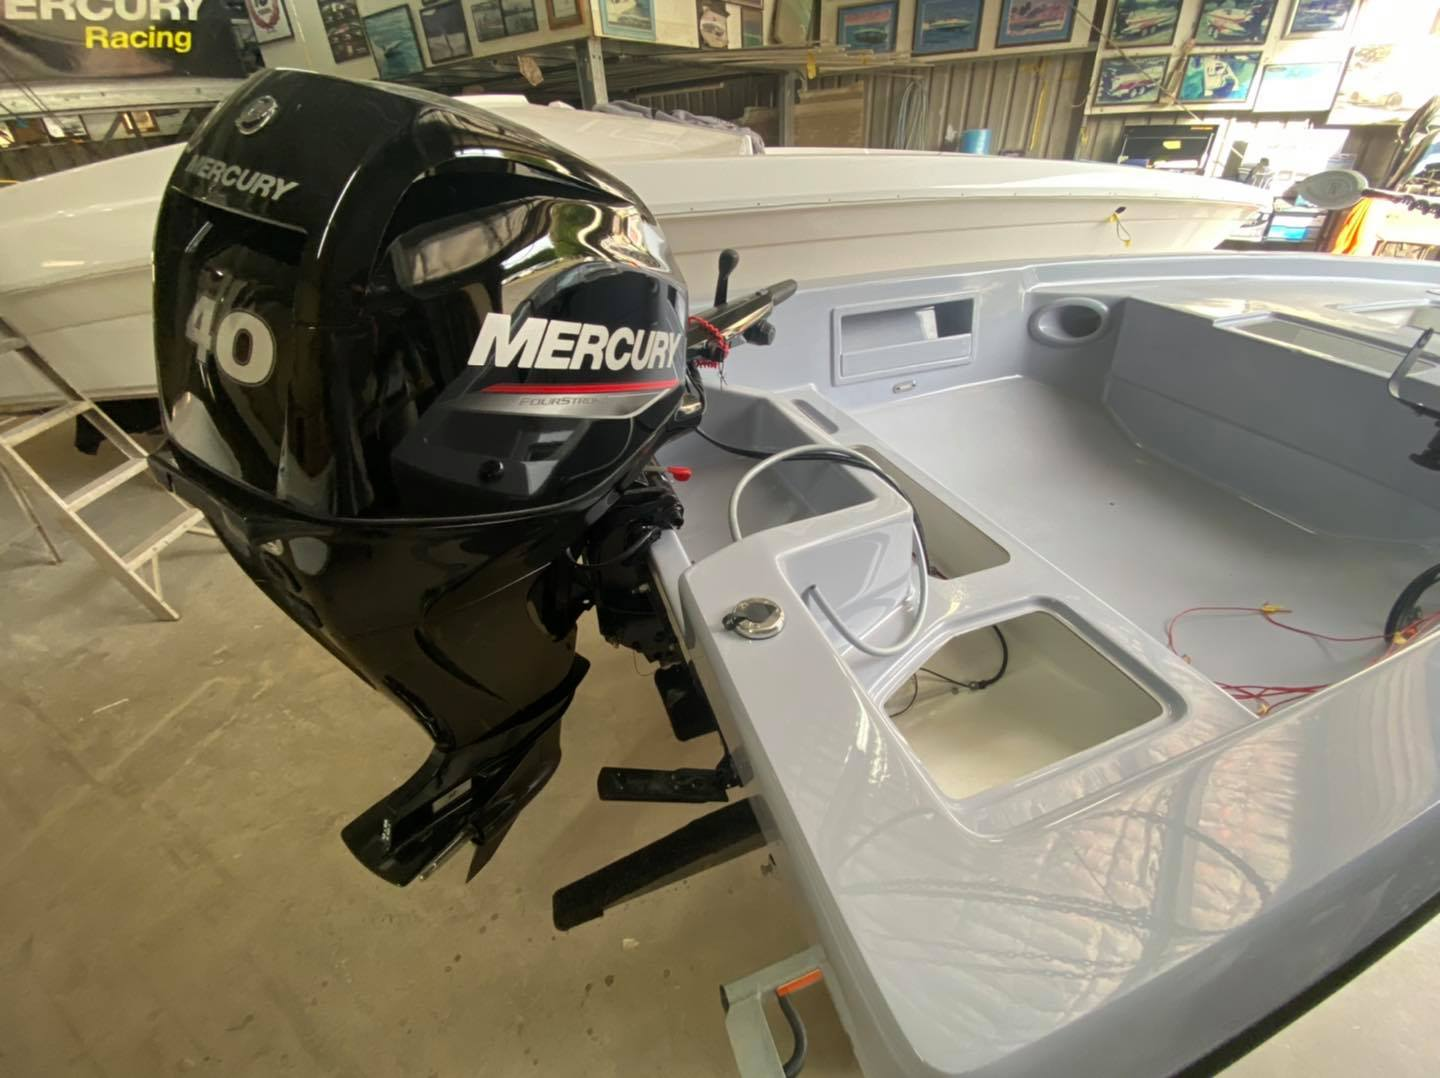 40hp, 4 stroke 3 cylinder electric start Mercury engine is installed!  The Force F13 Fisher is coming together nicely!